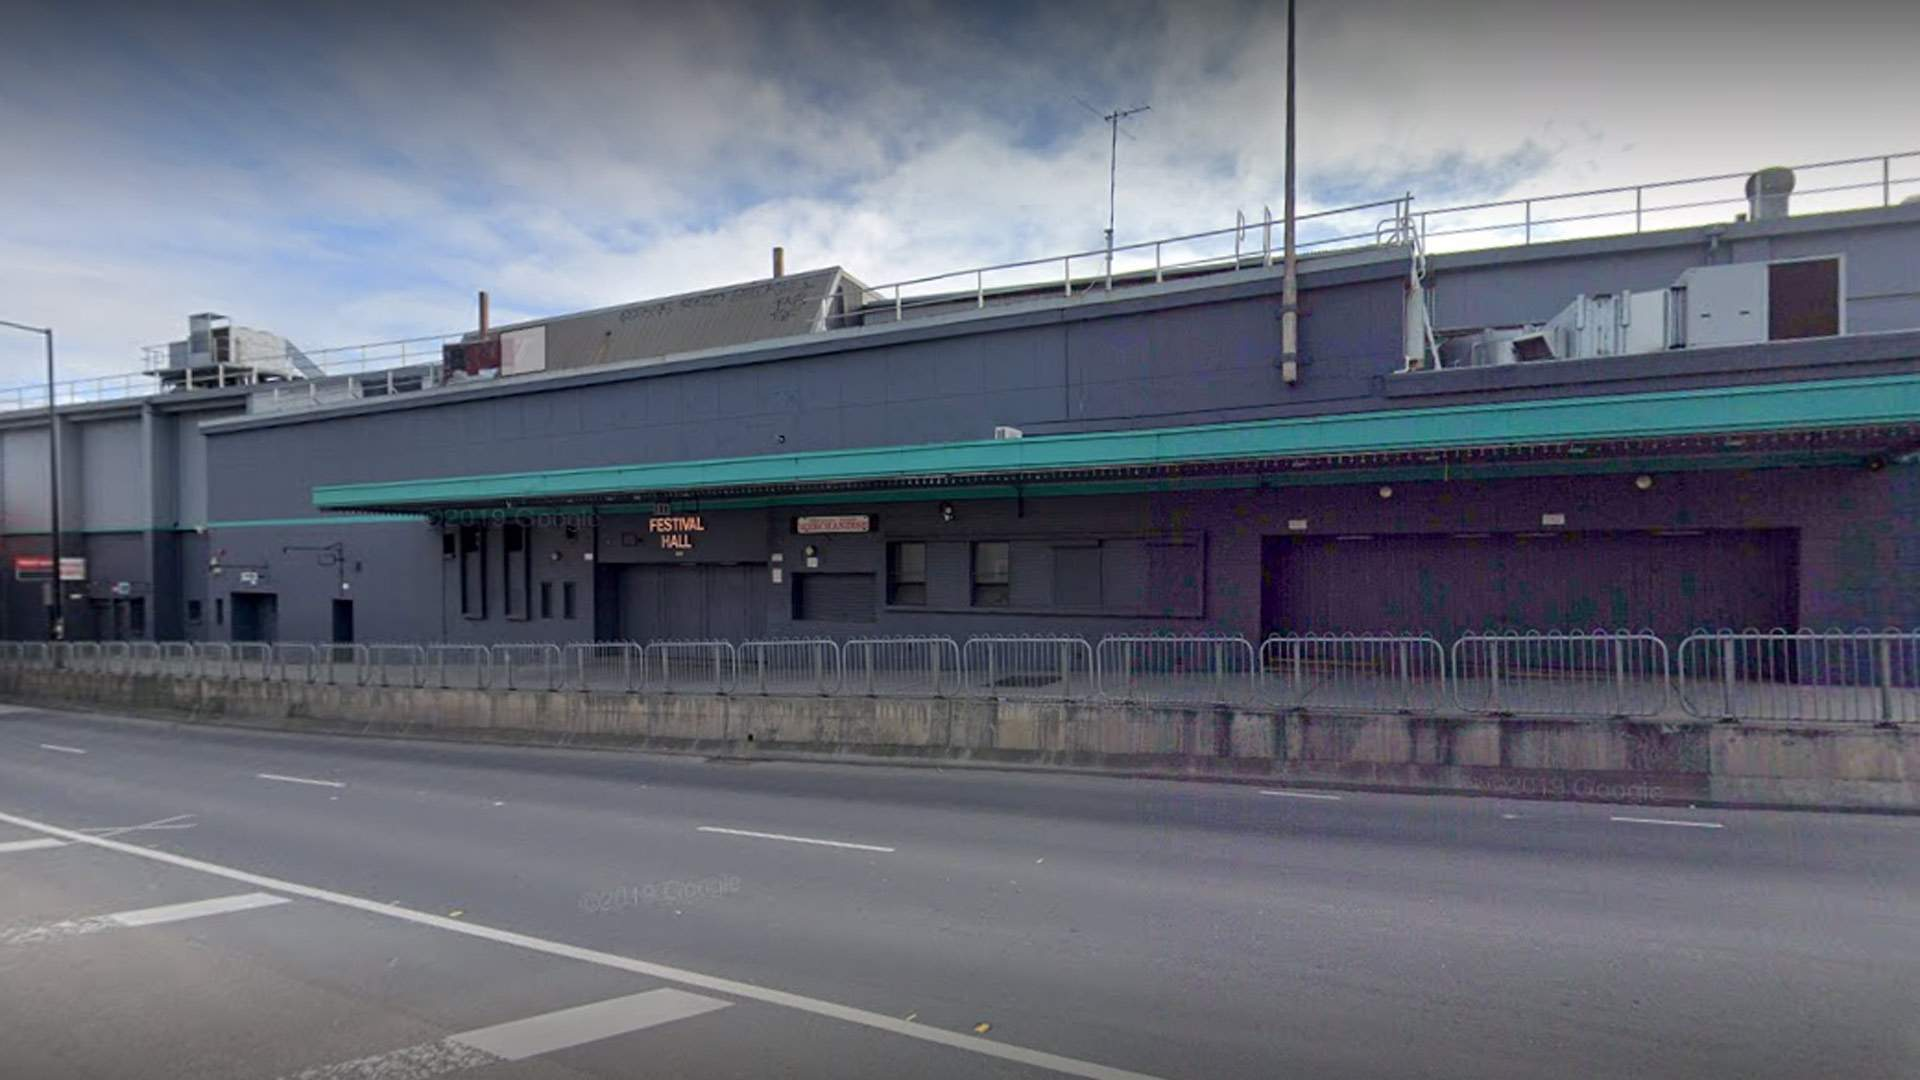 Historic Melbourne Music Venue Festival Hall Has Been Bought by Megachurch Hillsong